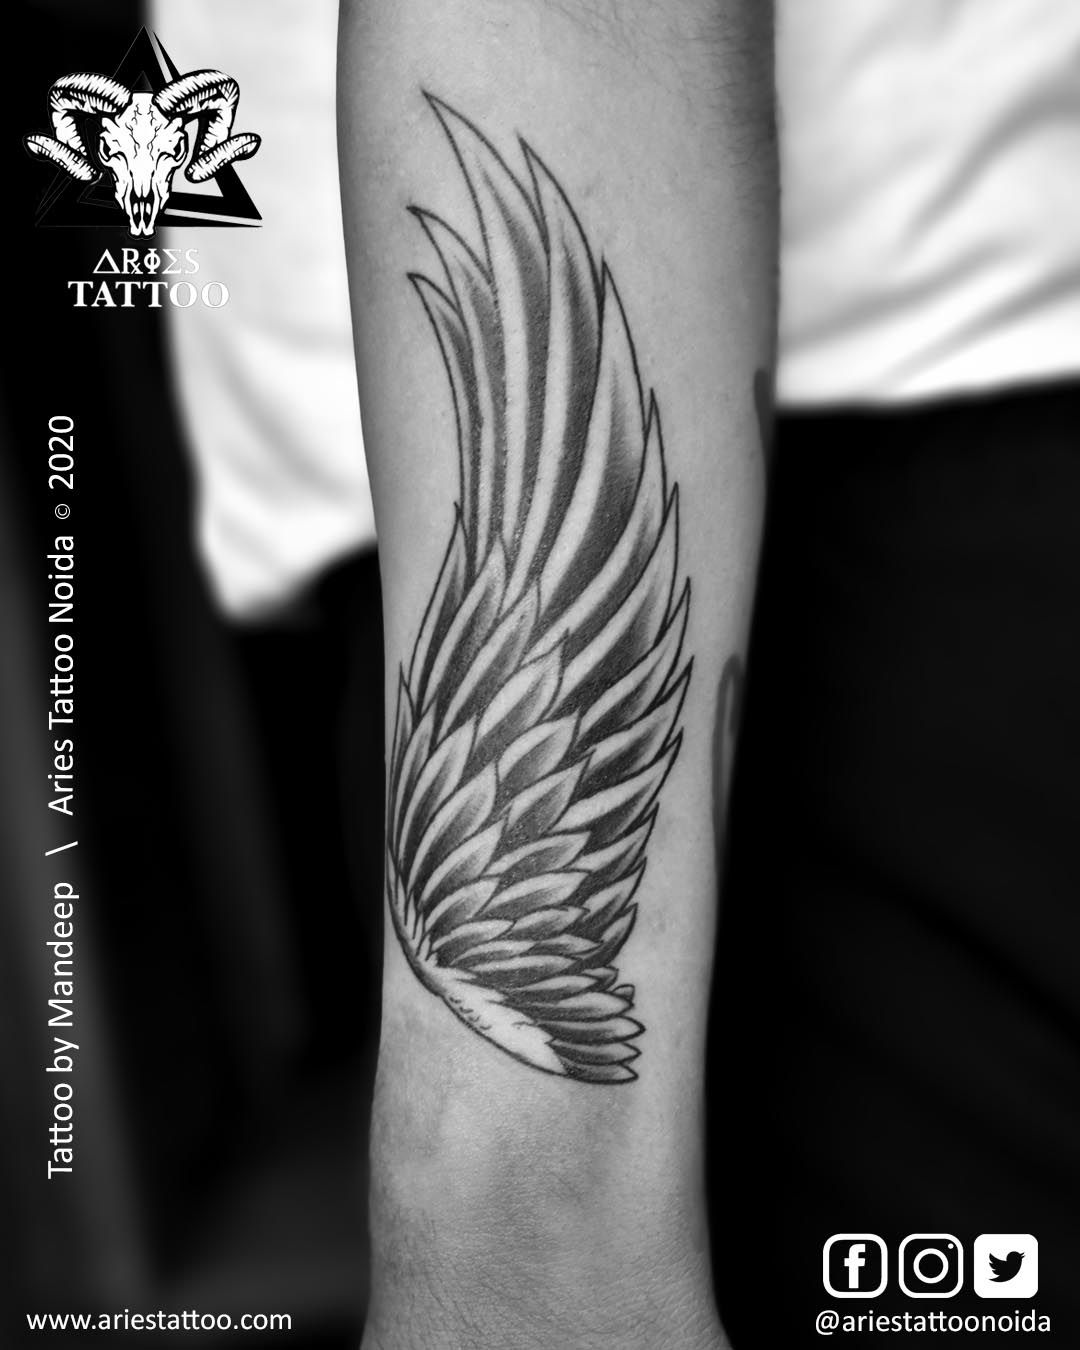 Wings Tattoo by Mandeep |Aries Tattoo Noida | Tattoo Shop and Studio In Noida